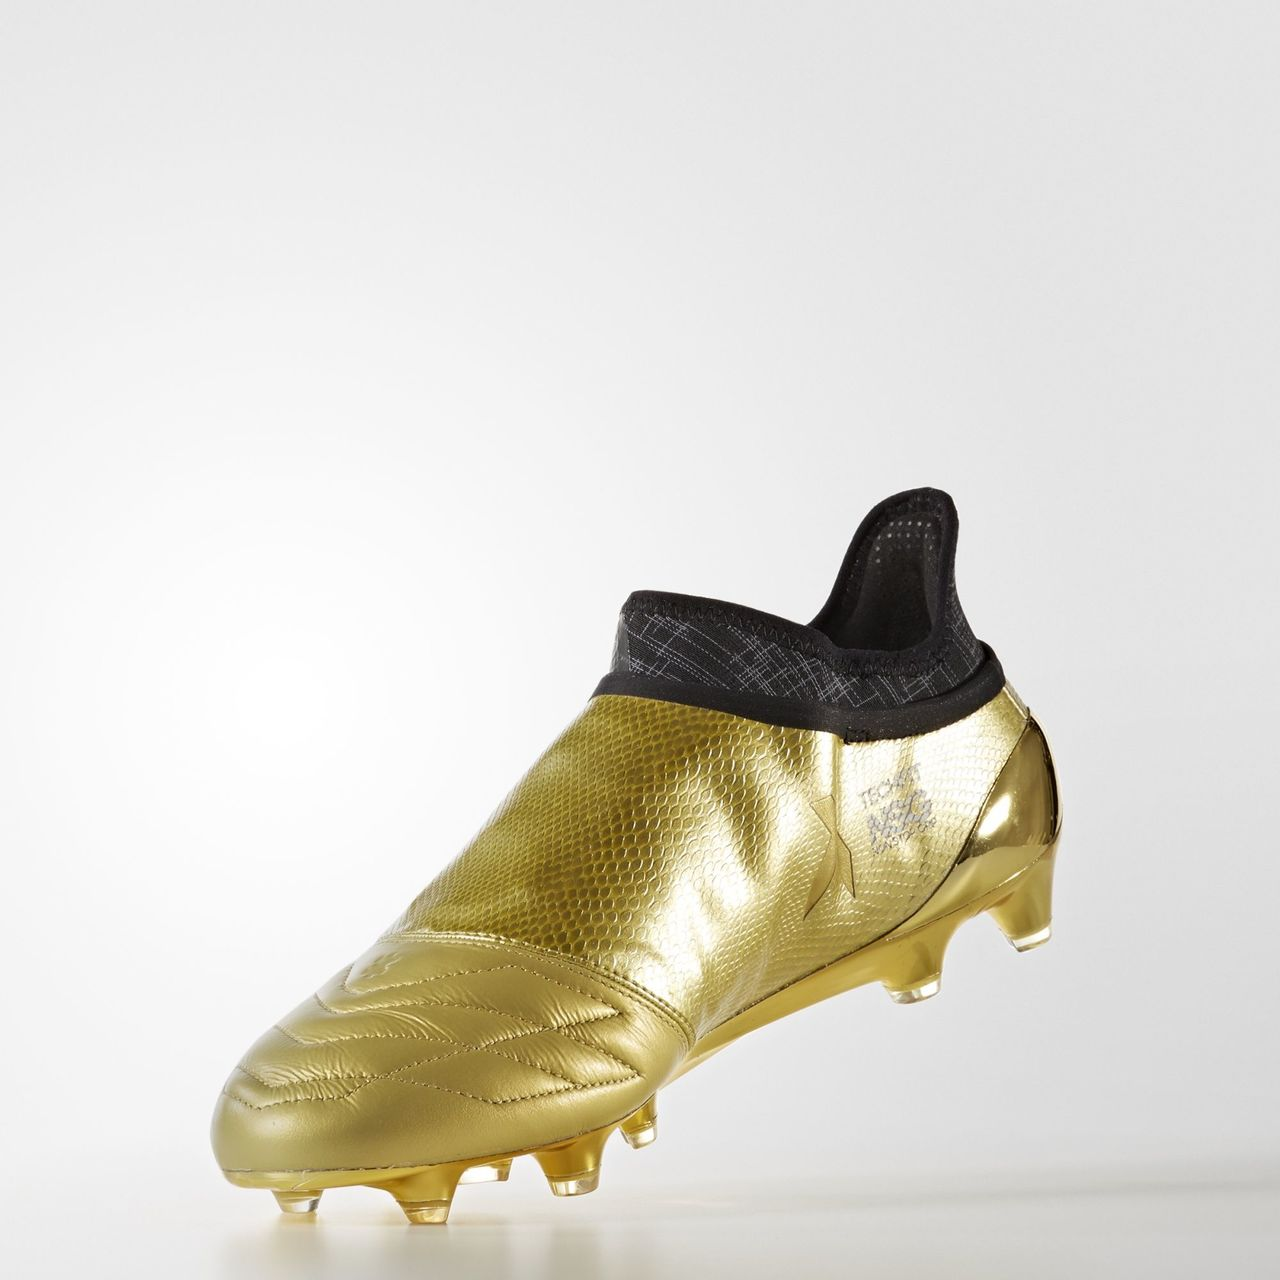 9f560fdd7 ... Click to enlarge image  adidas_x_16_purechaos_fg_ag_space_craft_gold-metallic_d.jpg ...